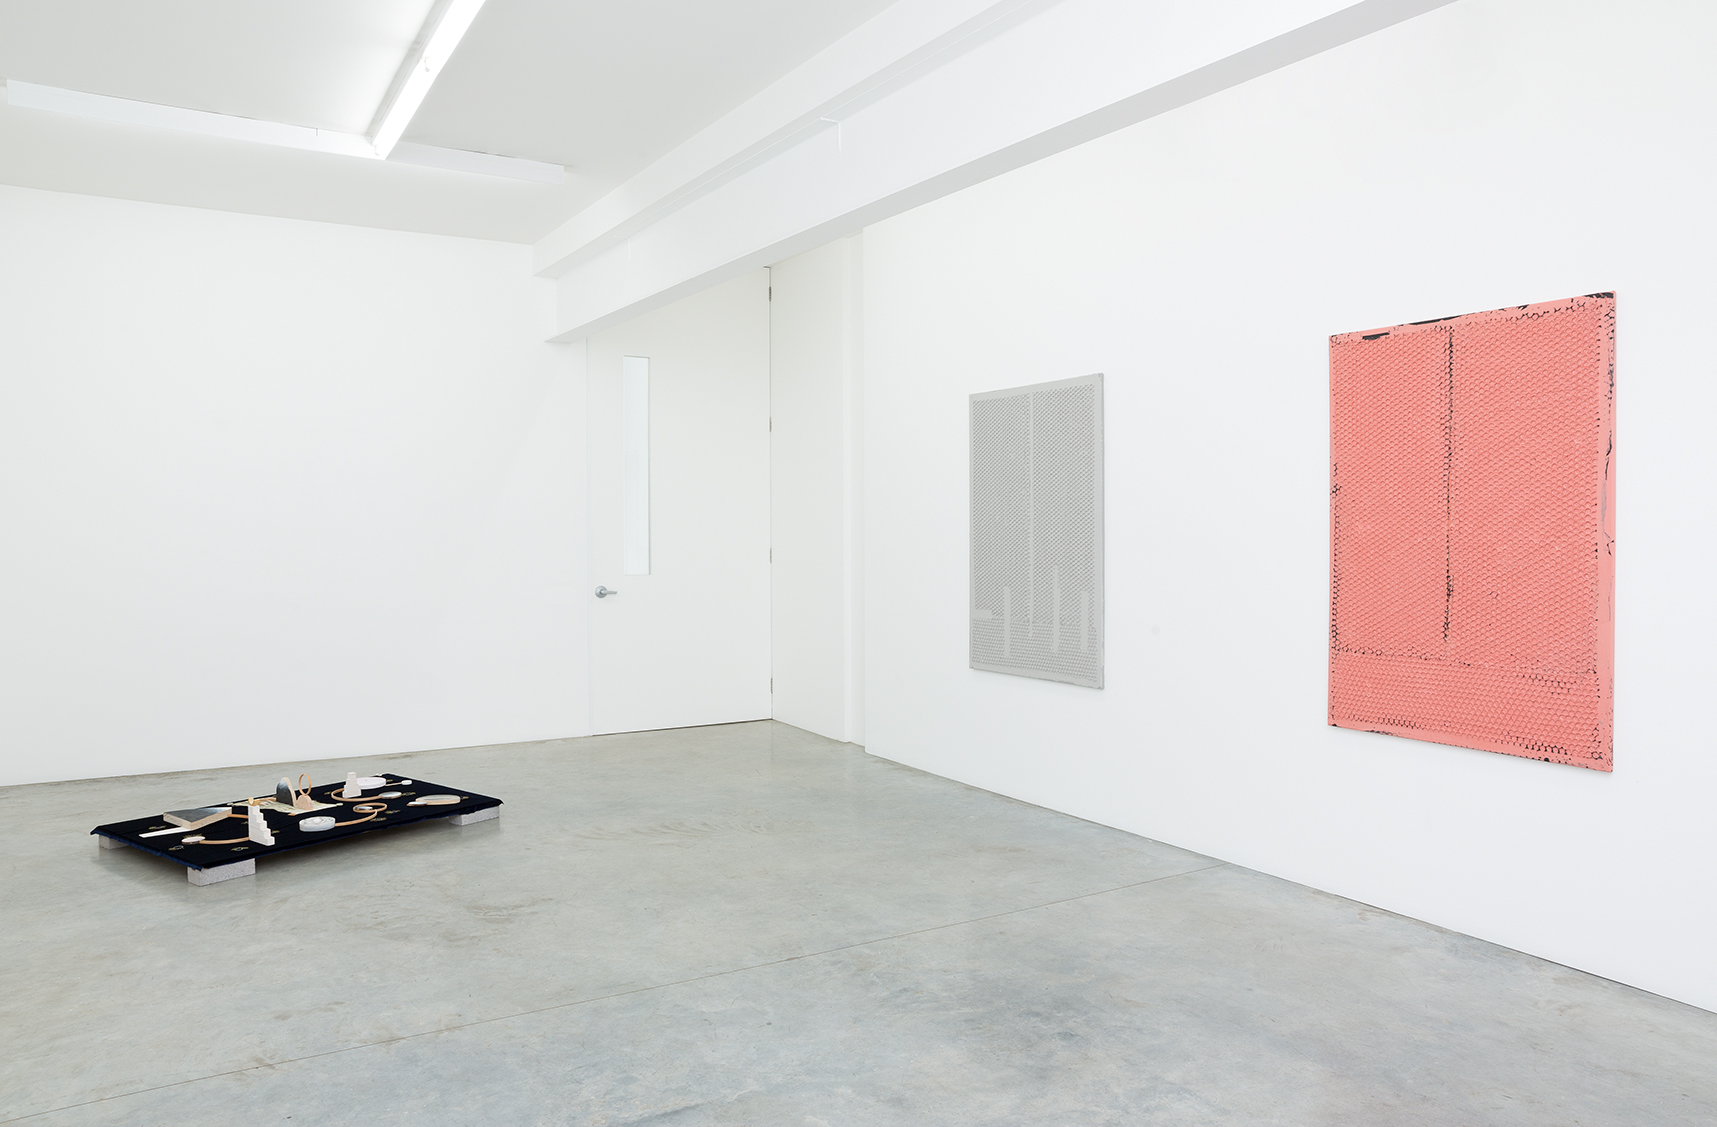 World Material installation view featuring Lisa Sammut (L) & Louise Weaver (R). Image courtesy the artists and Darren Knight Gallery, Sydney. Photography: Simon Hewson